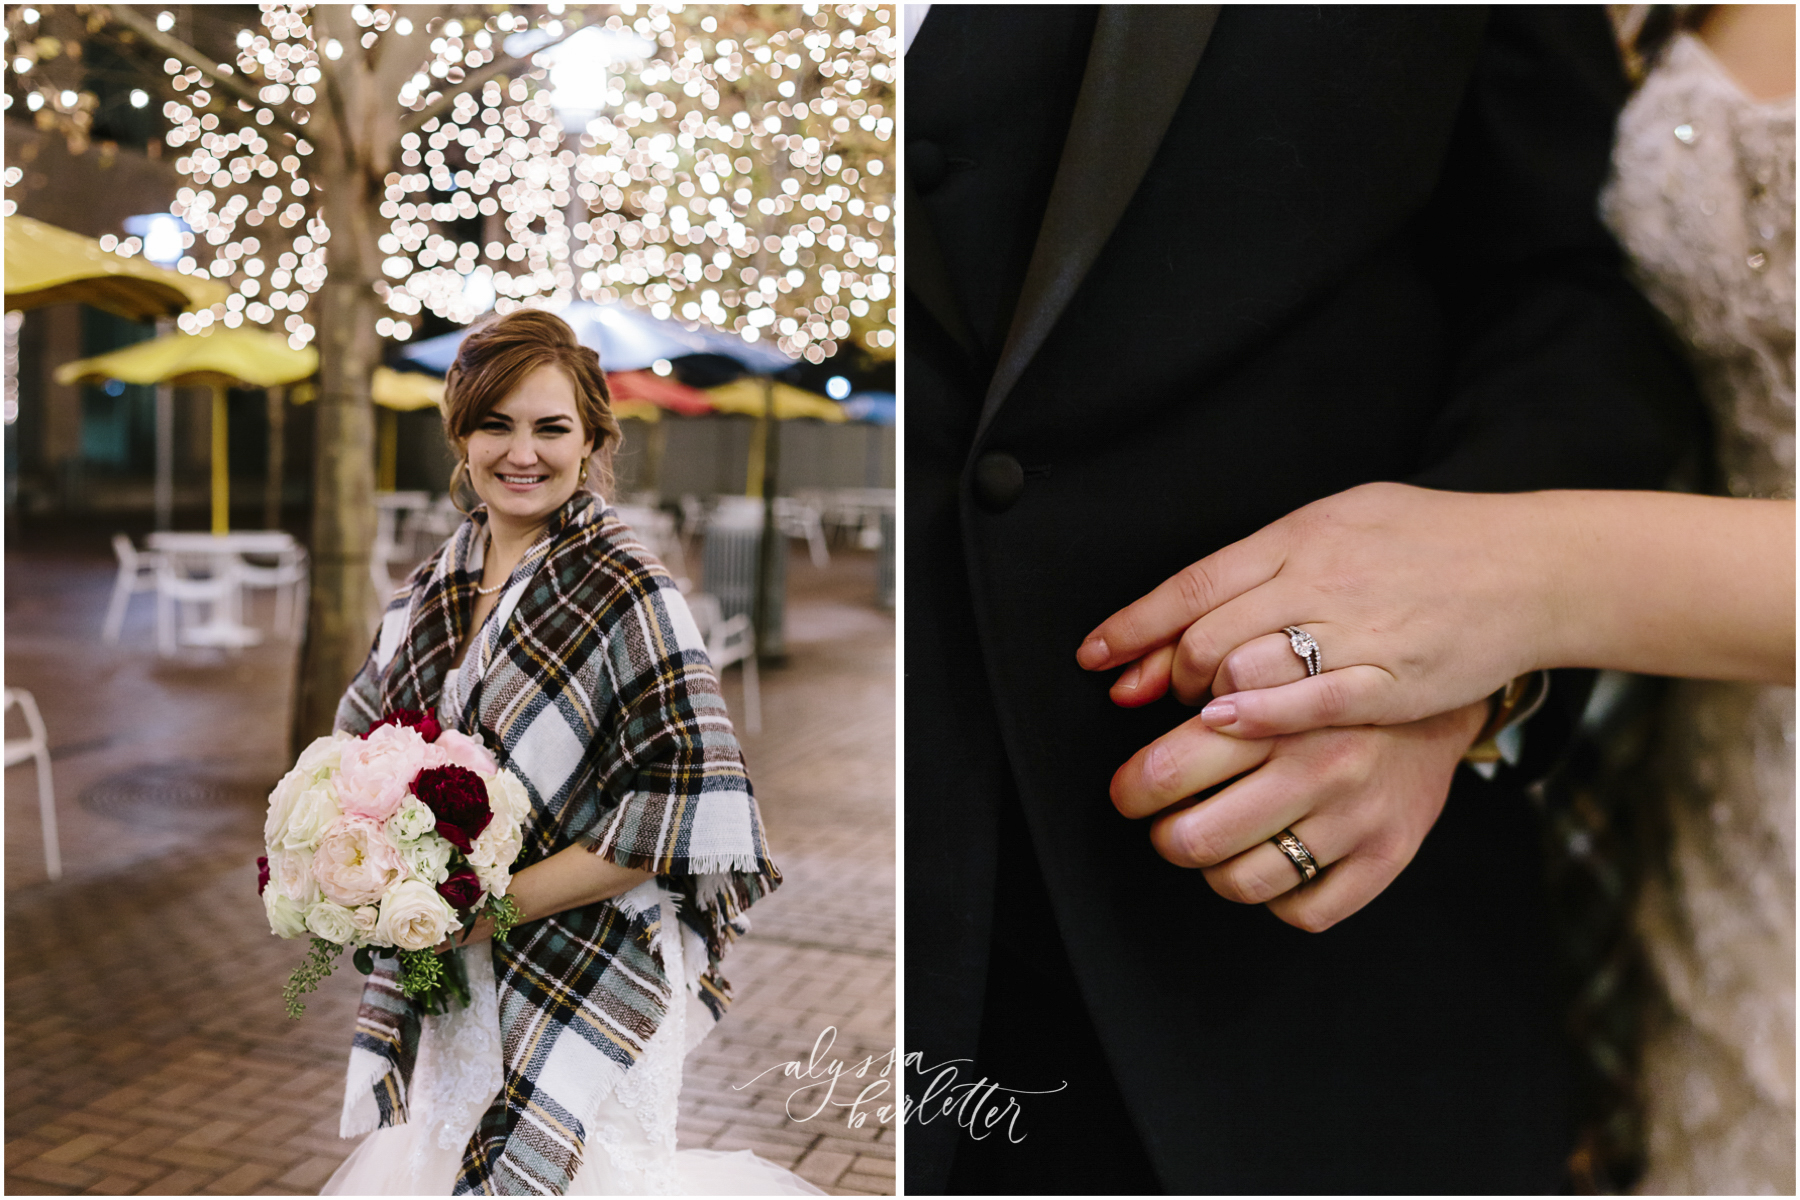 alyssa barletter photography kansas city winter wedding studio dan meiners pennway place jennie and dave-1-42.jpg